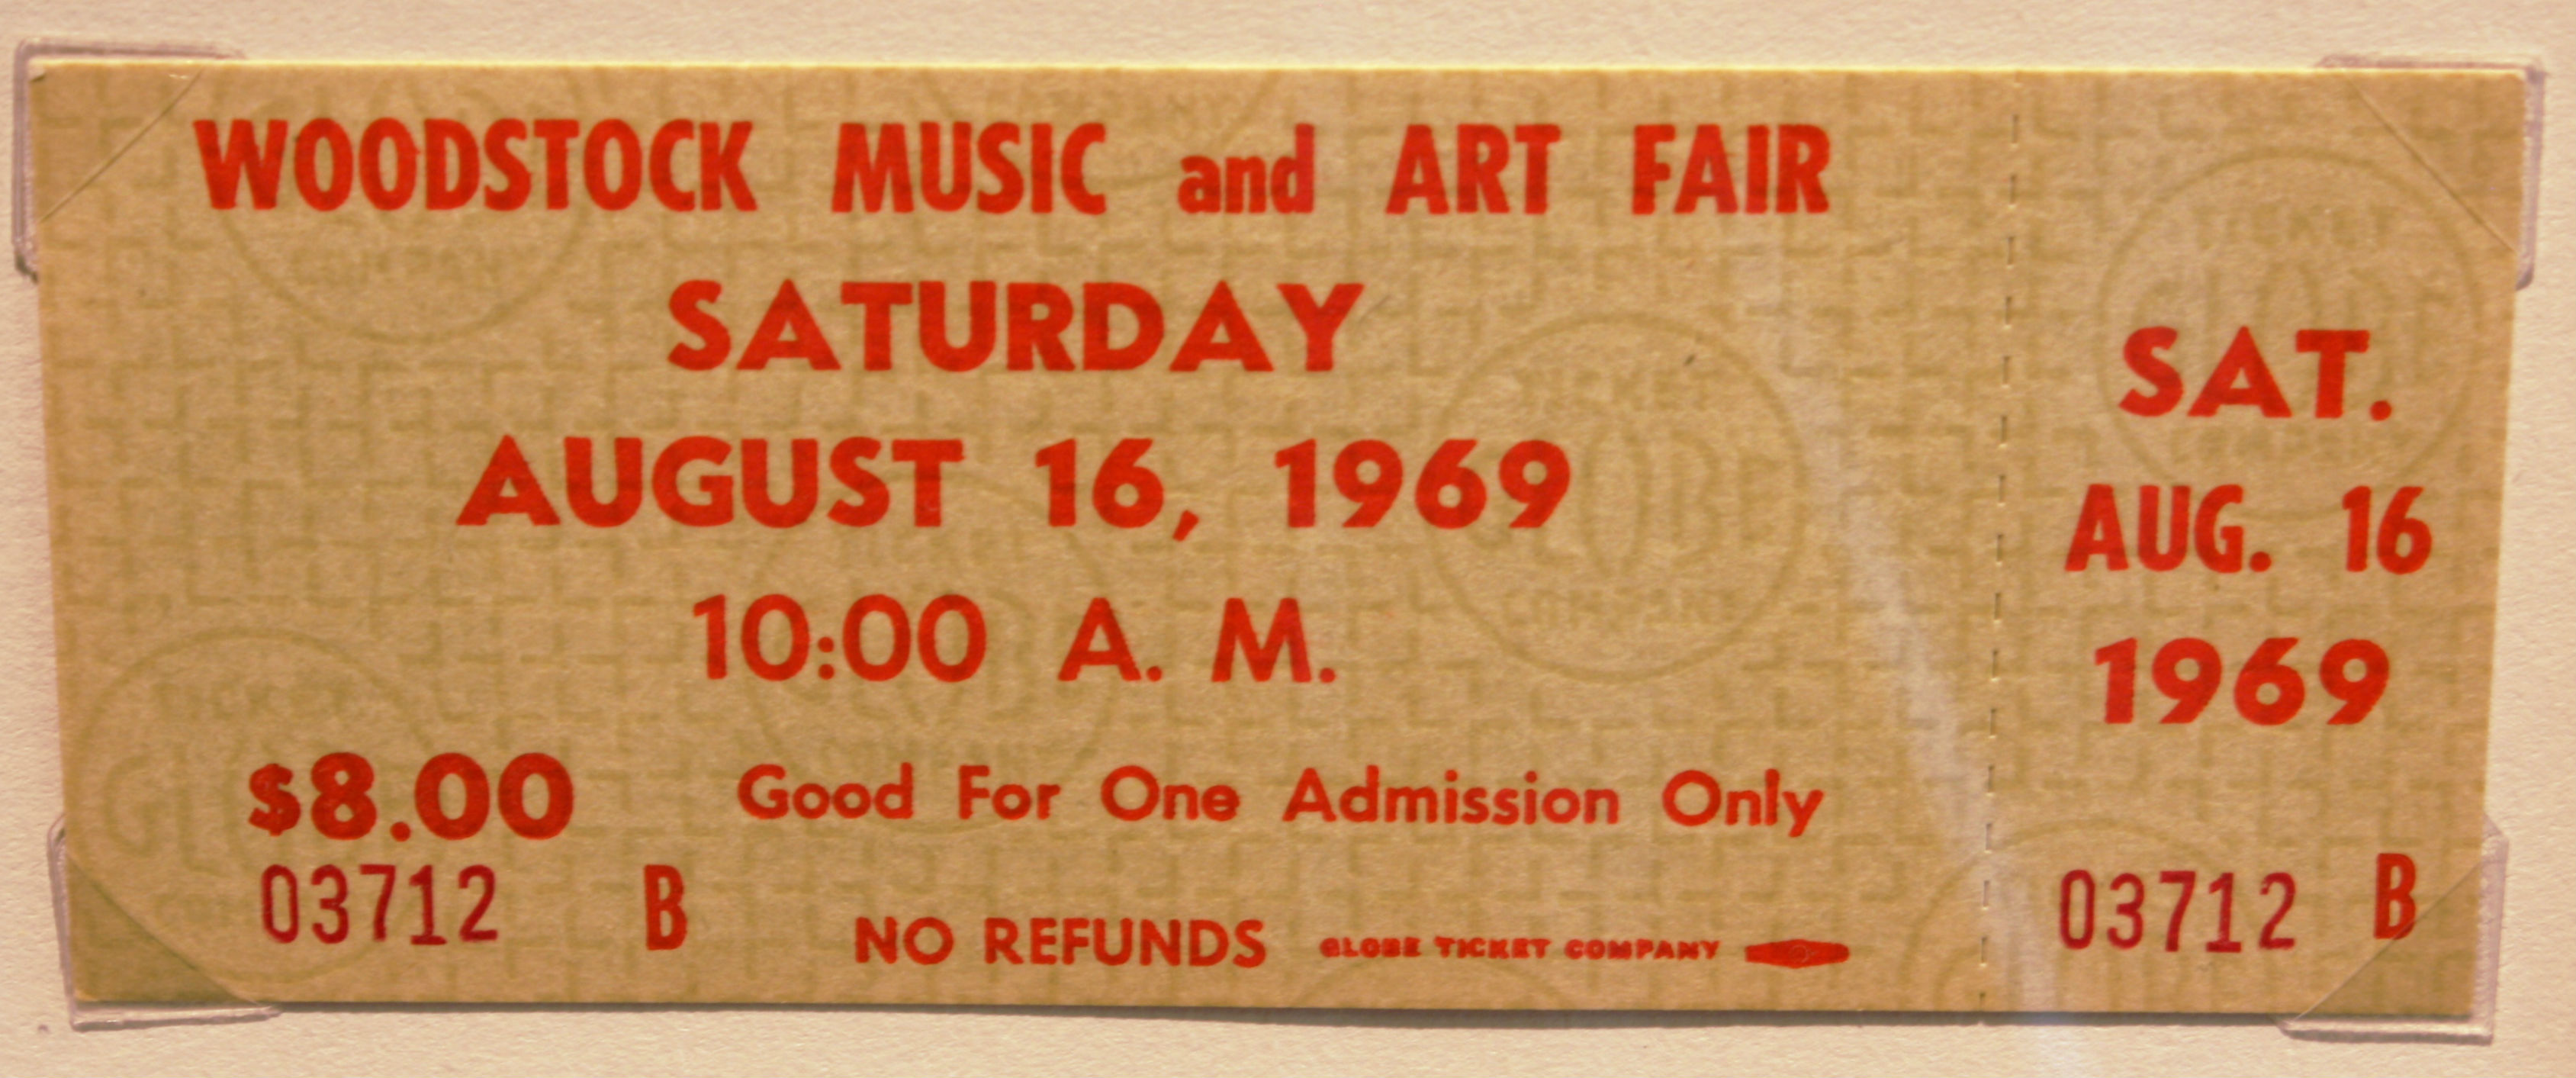 ART8_WOODSTOCK_TICKET_03712_c.jpg